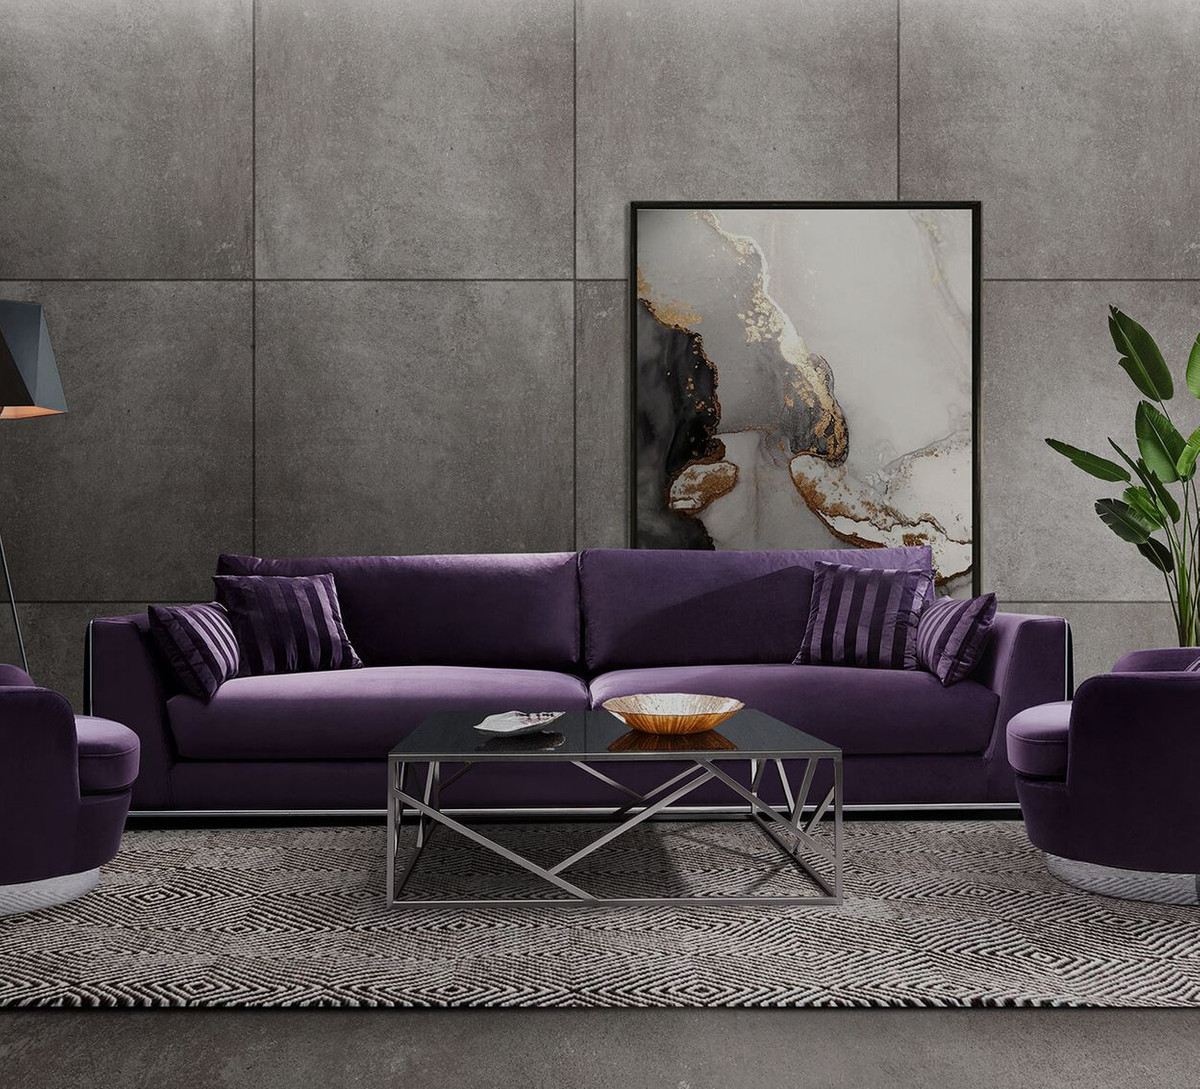 Couch Lila Casa Padrino Luxury Sofa Purple / Silver 300 X 102 X H. 61 Cm - Living Room Sofa With Decorative Pillows - Luxury Living Room Furniture |